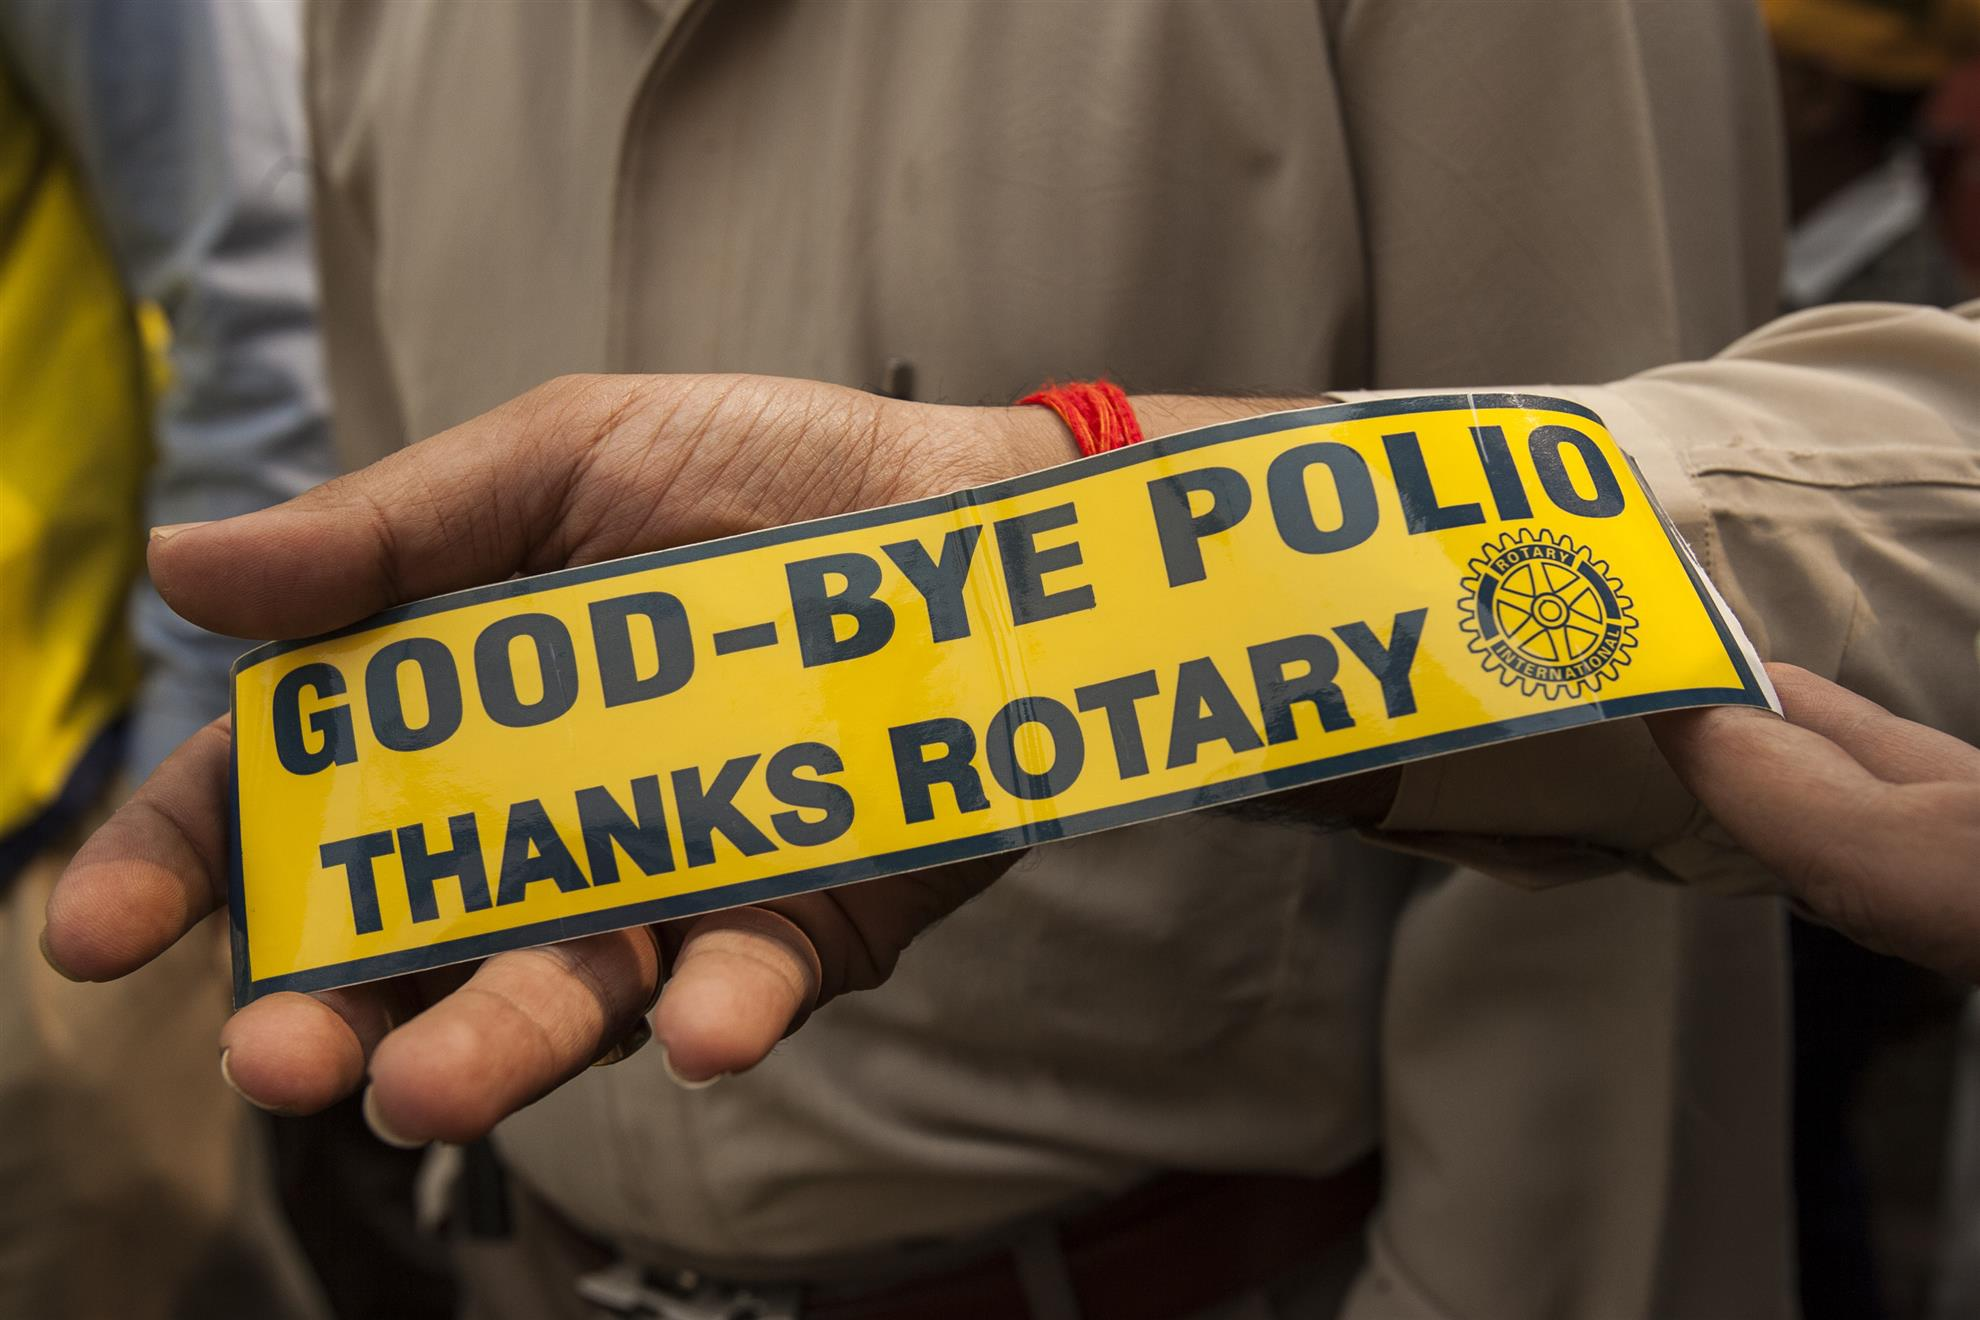 We've reduced polio cases by 99.9%, but until it's stopped, children everywhere are at risk..